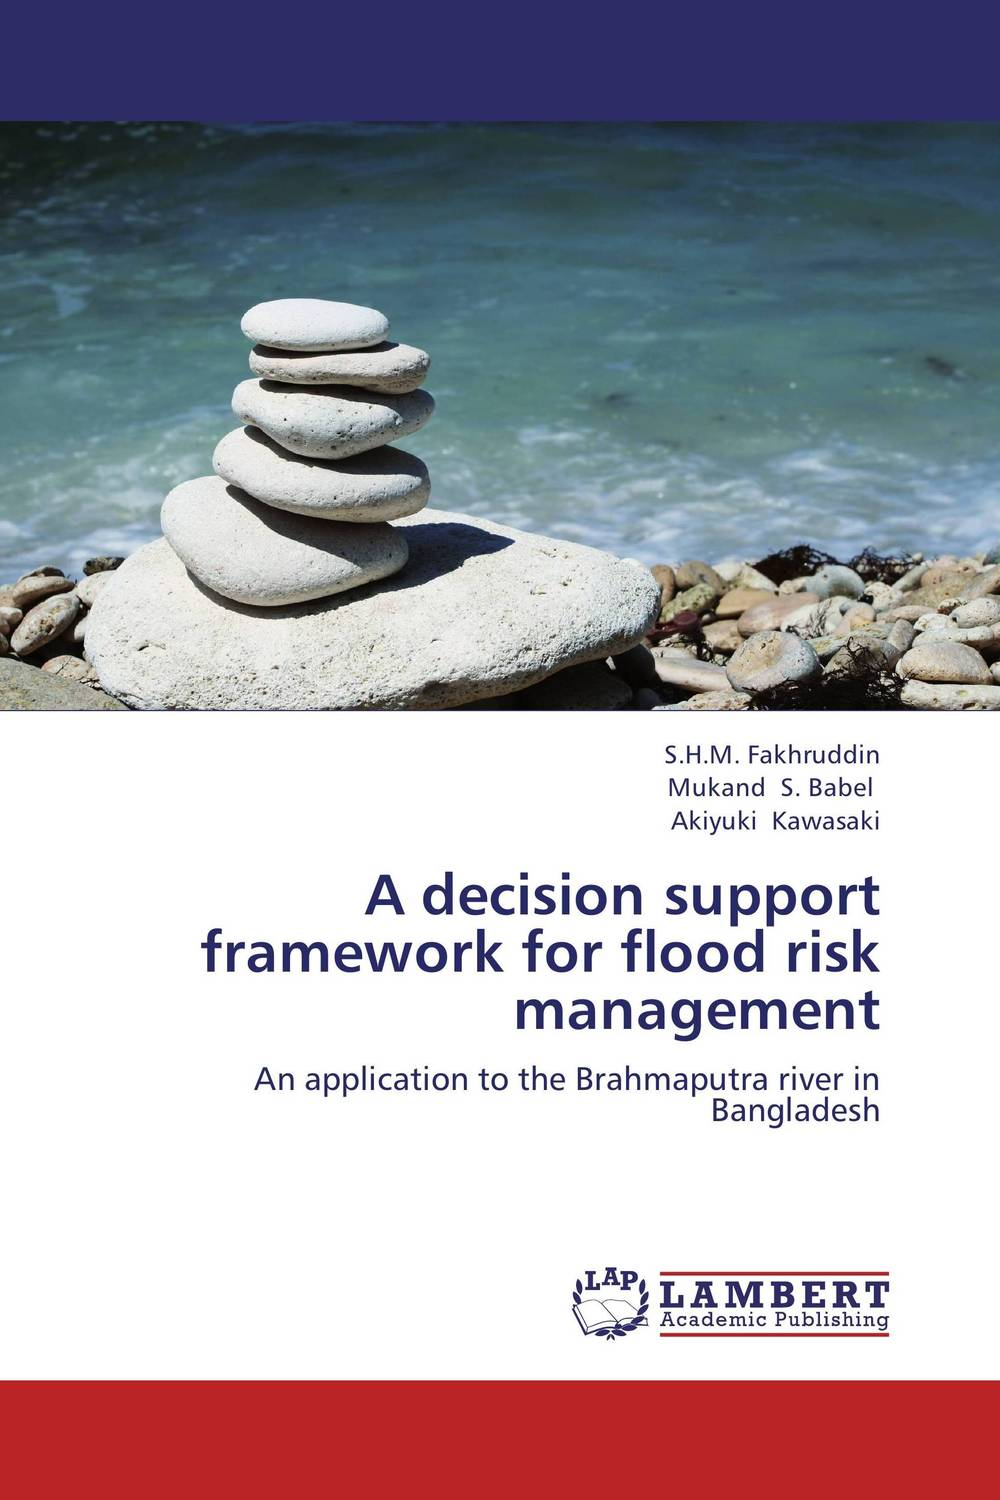 A decision support framework for flood risk management thomas stanton managing risk and performance a guide for government decision makers